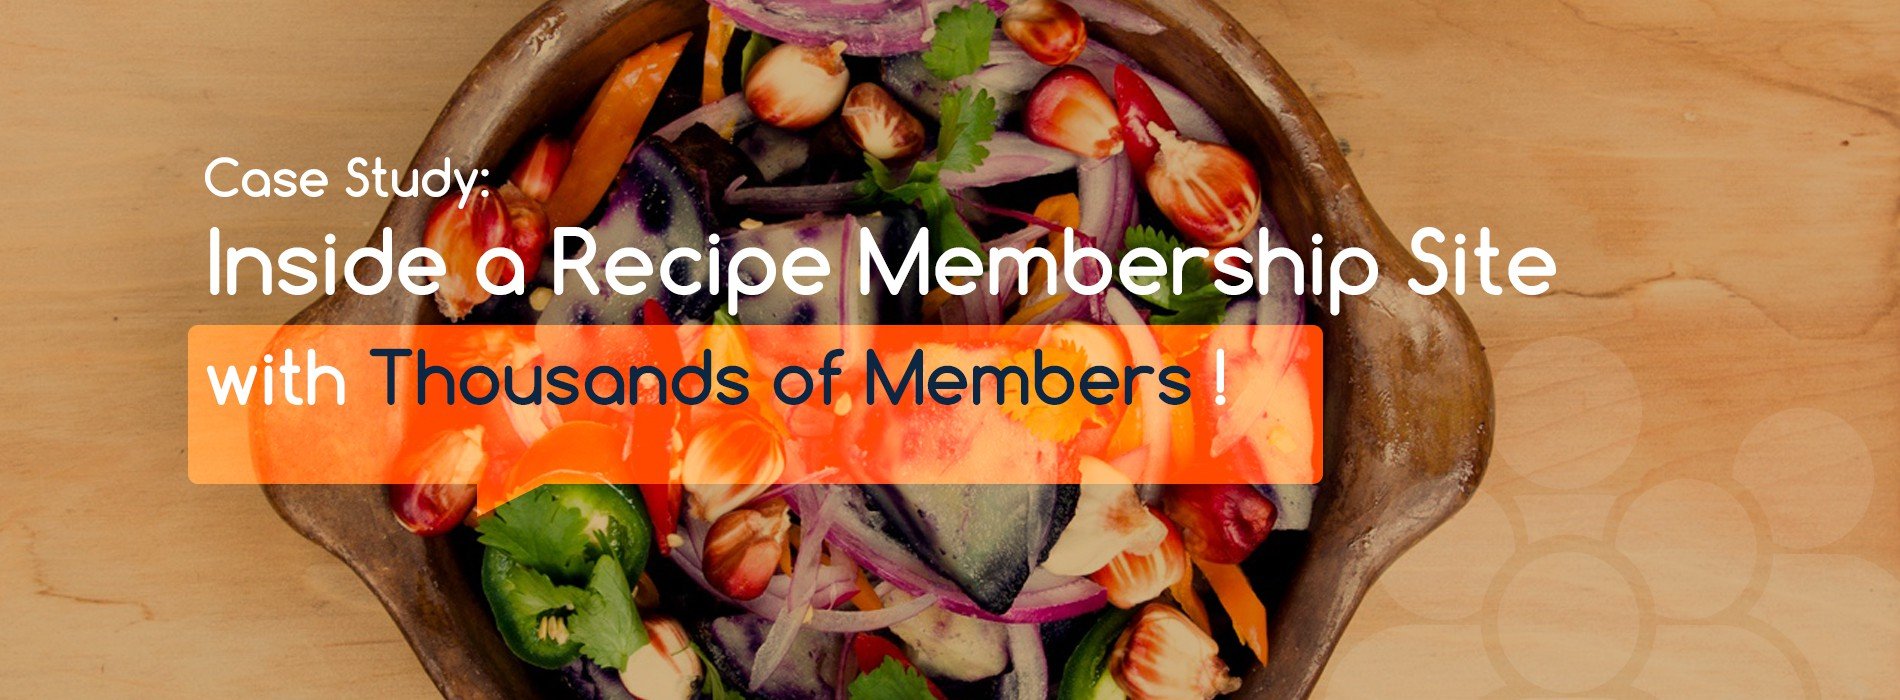 1900 x 700 Product Banner For 'Case Study: Inside a Recipe Membership Site with Thousands of Members